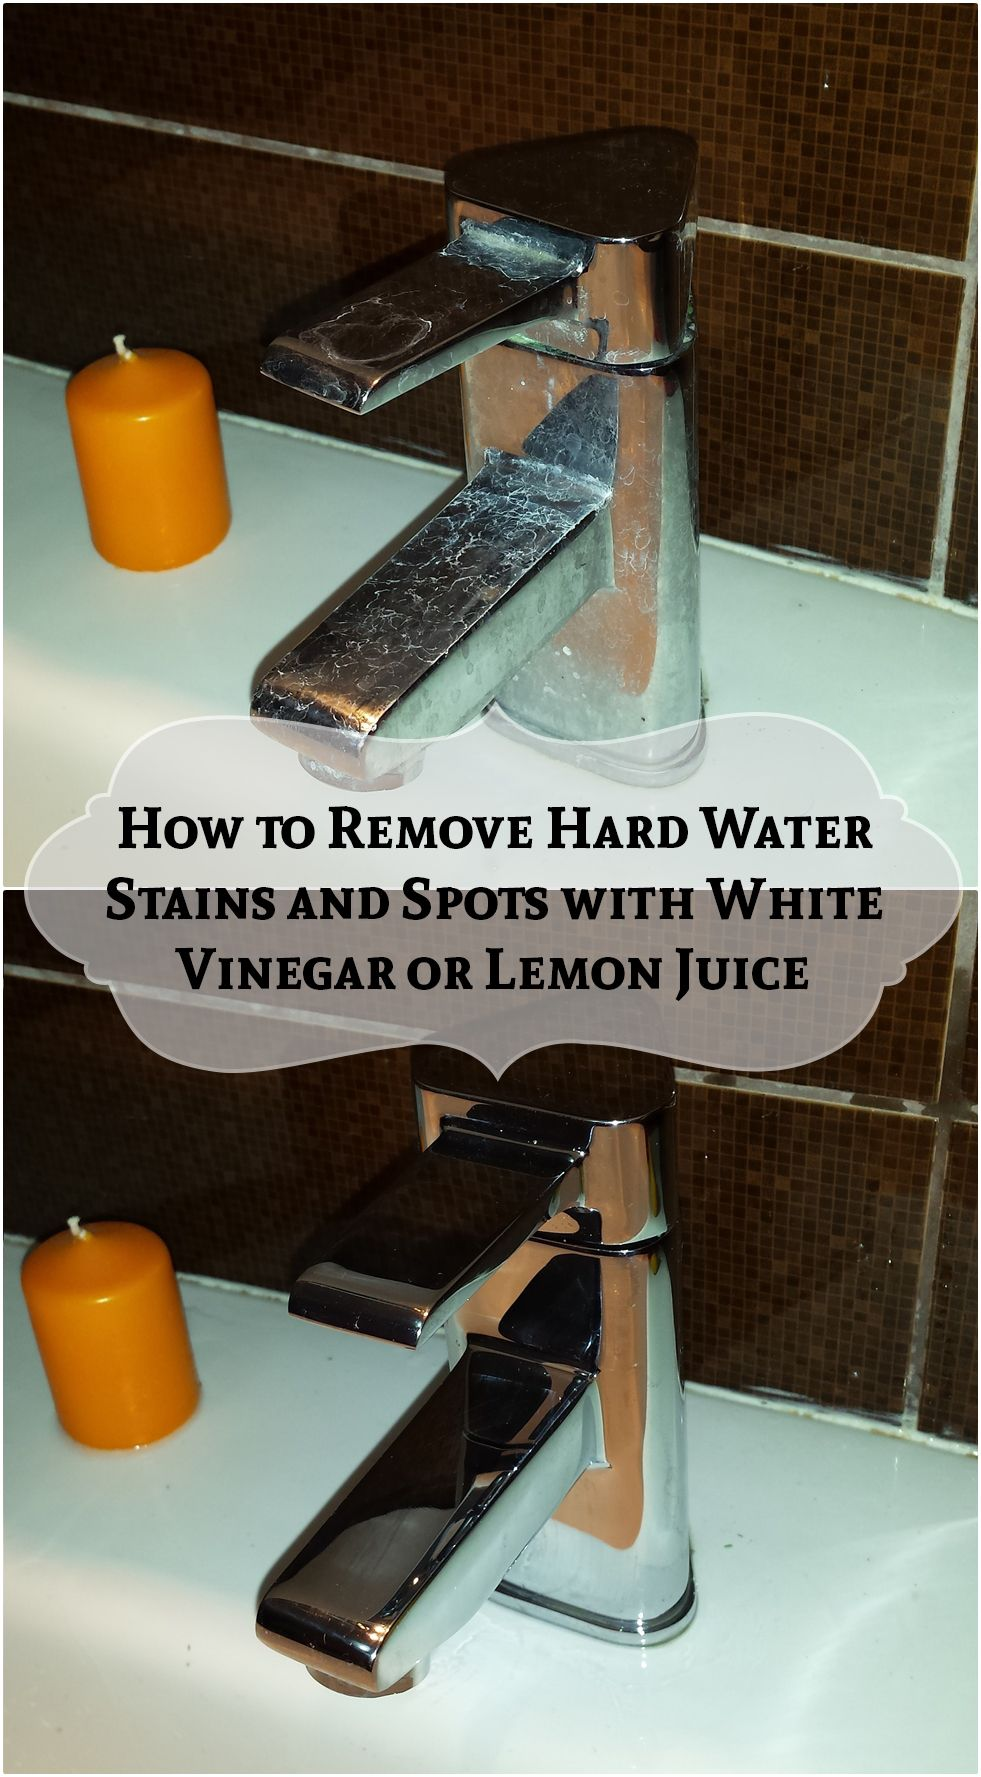 How to Remove Hard Water Stains and Spots with White Vinegar or ...